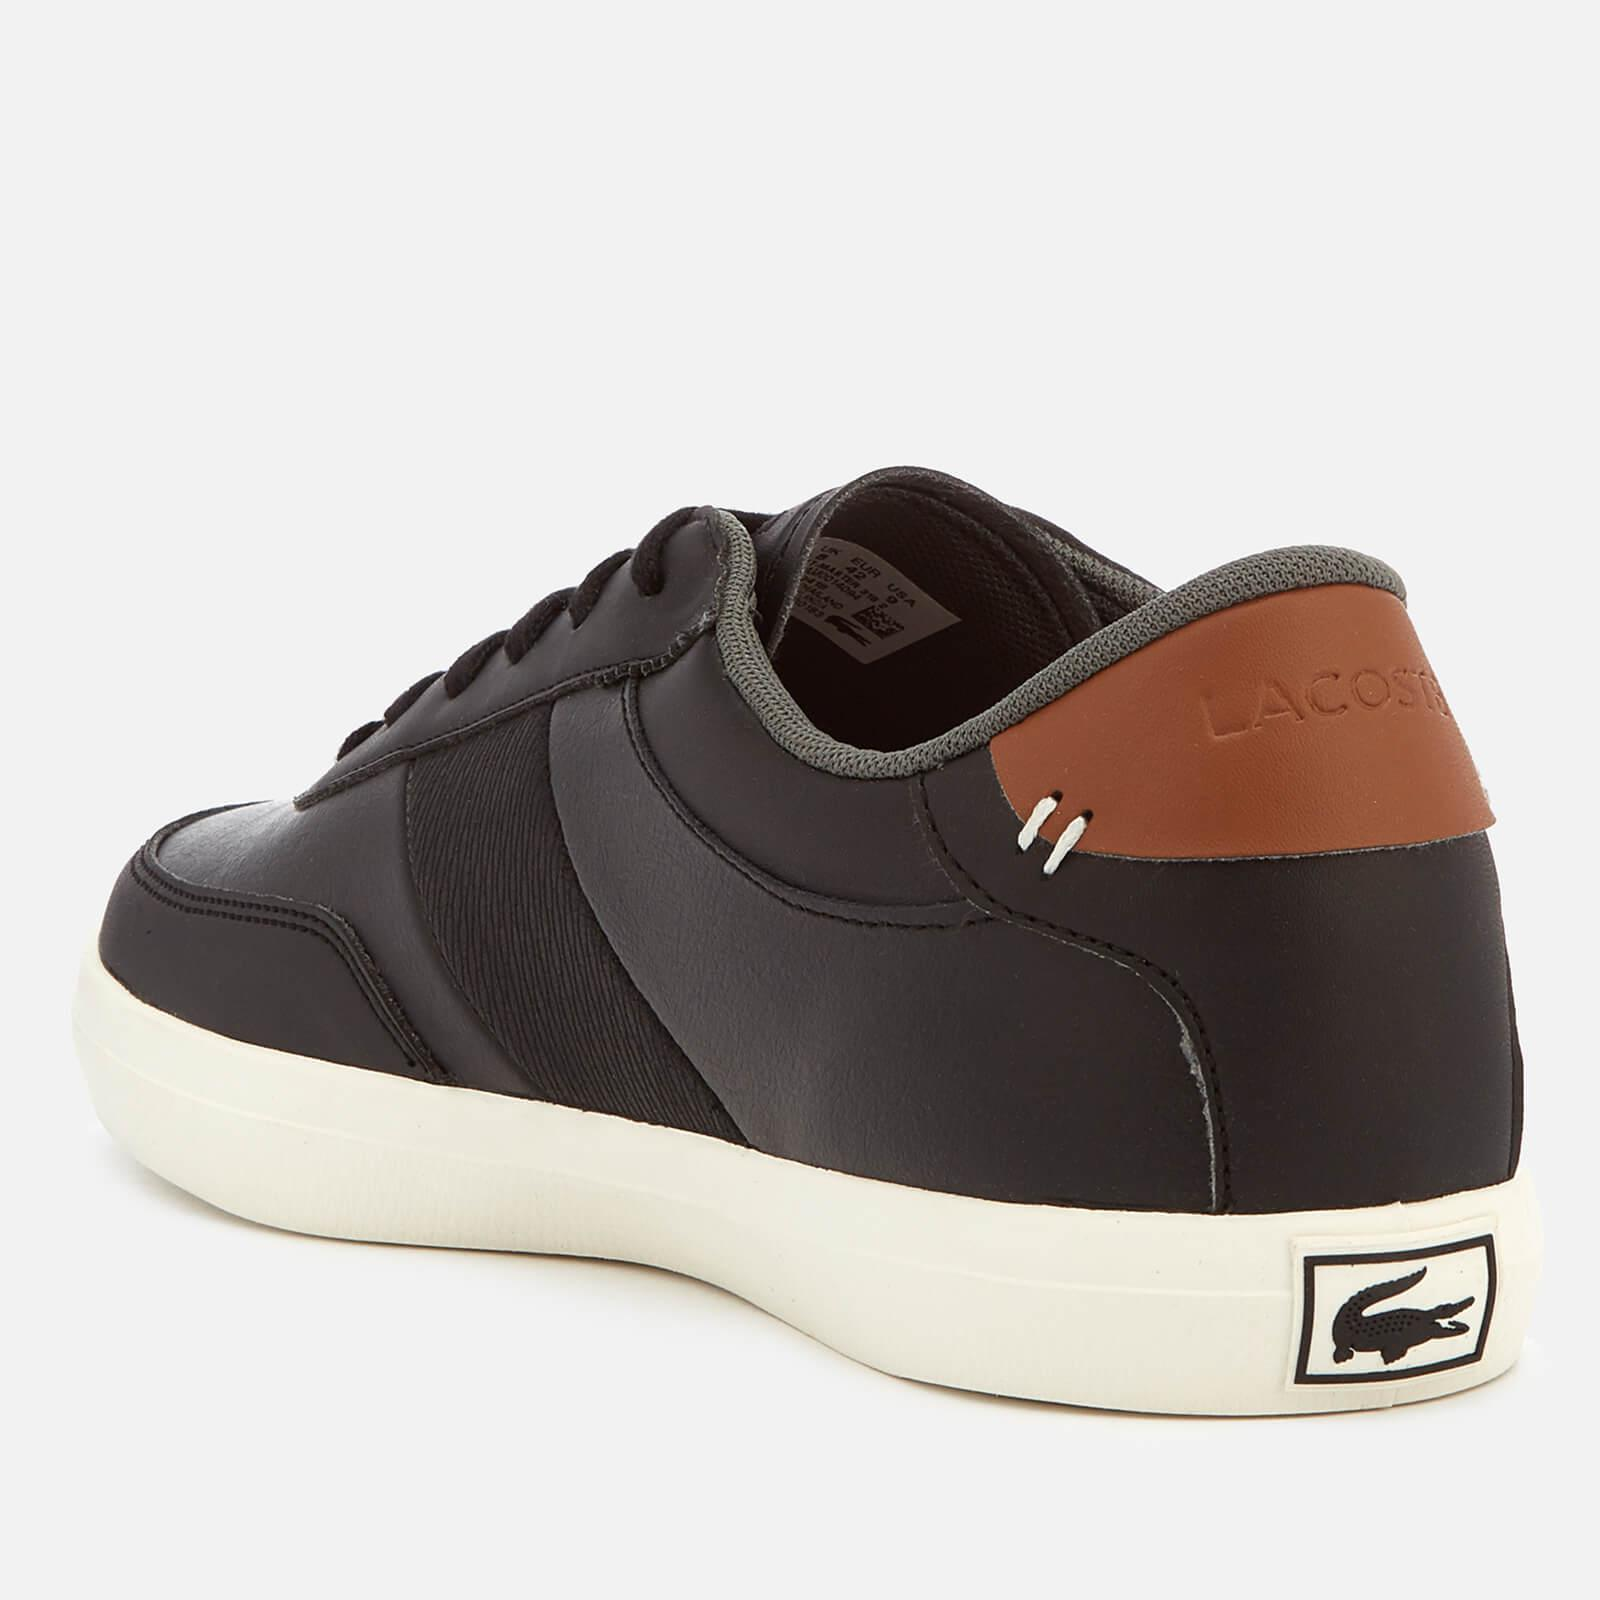 3f78c4fe7 Lacoste - Black Court-master 318 2 Leather Vulcanised Trainers for Men -  Lyst. View fullscreen